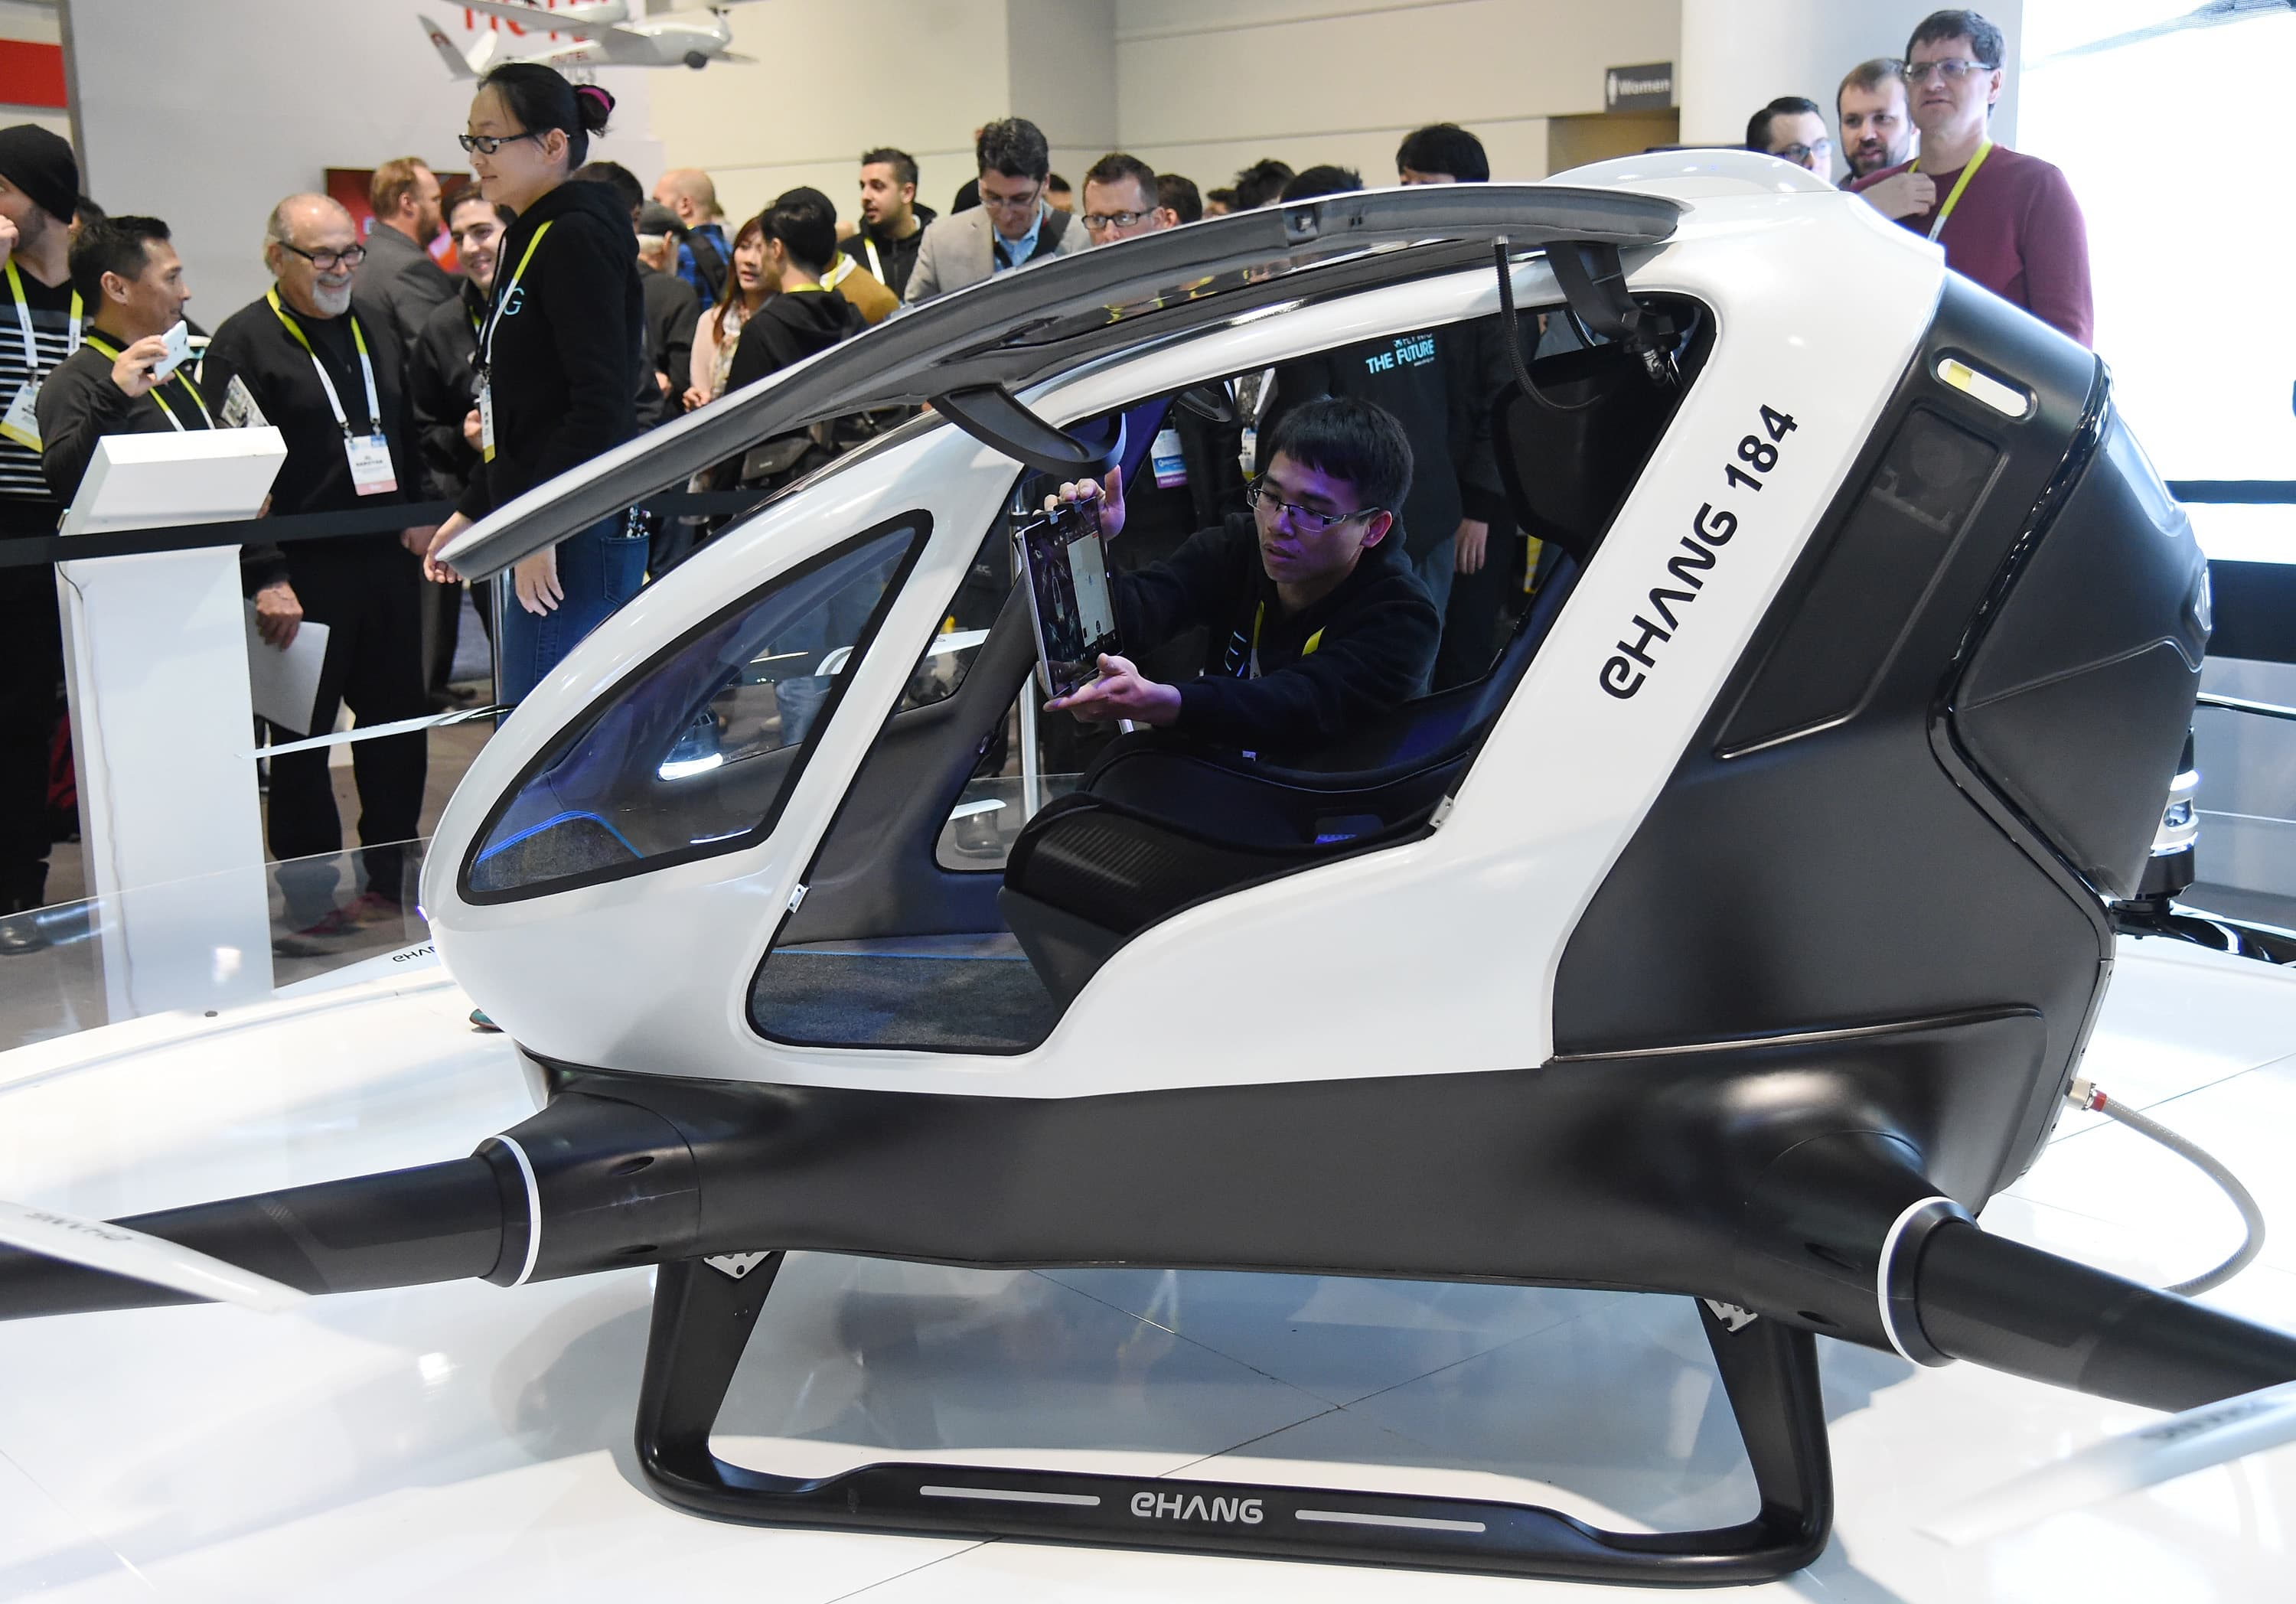 Would You Feel Safe Riding A Passenger Drone According To Research Most Americans Wouldnt